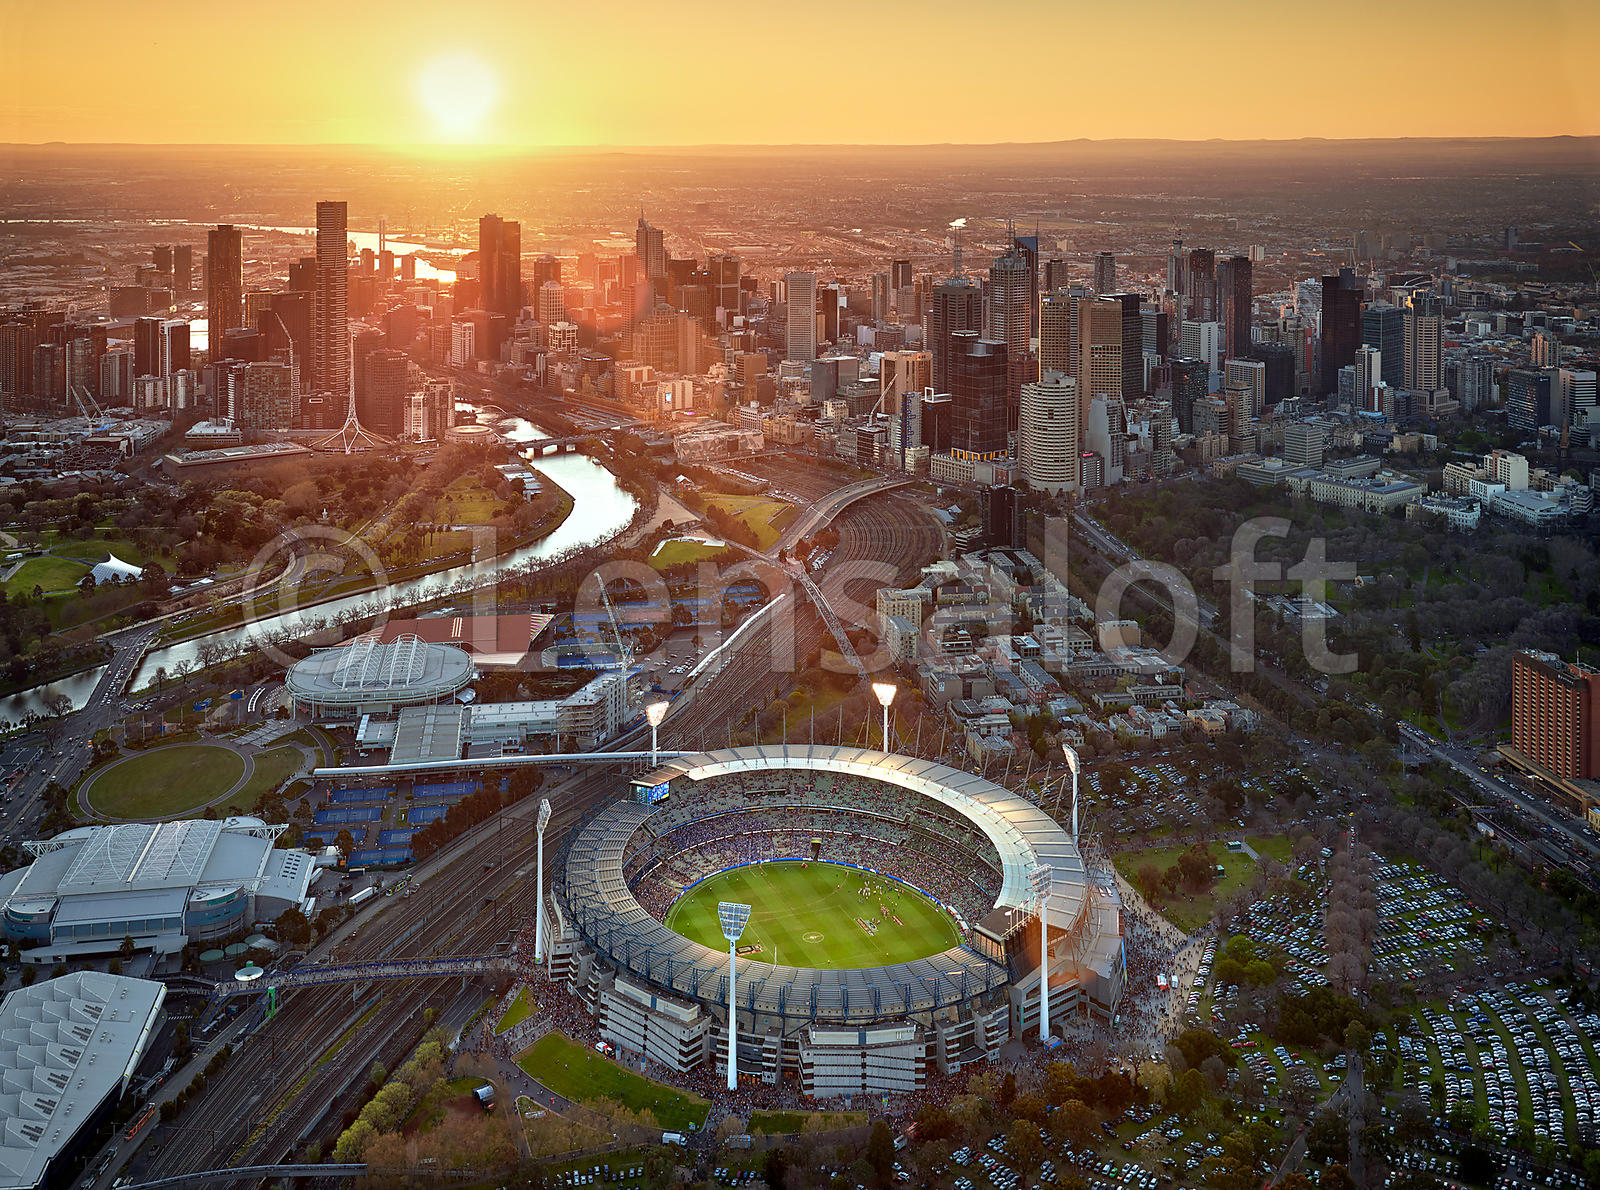 Sunset over the MCG